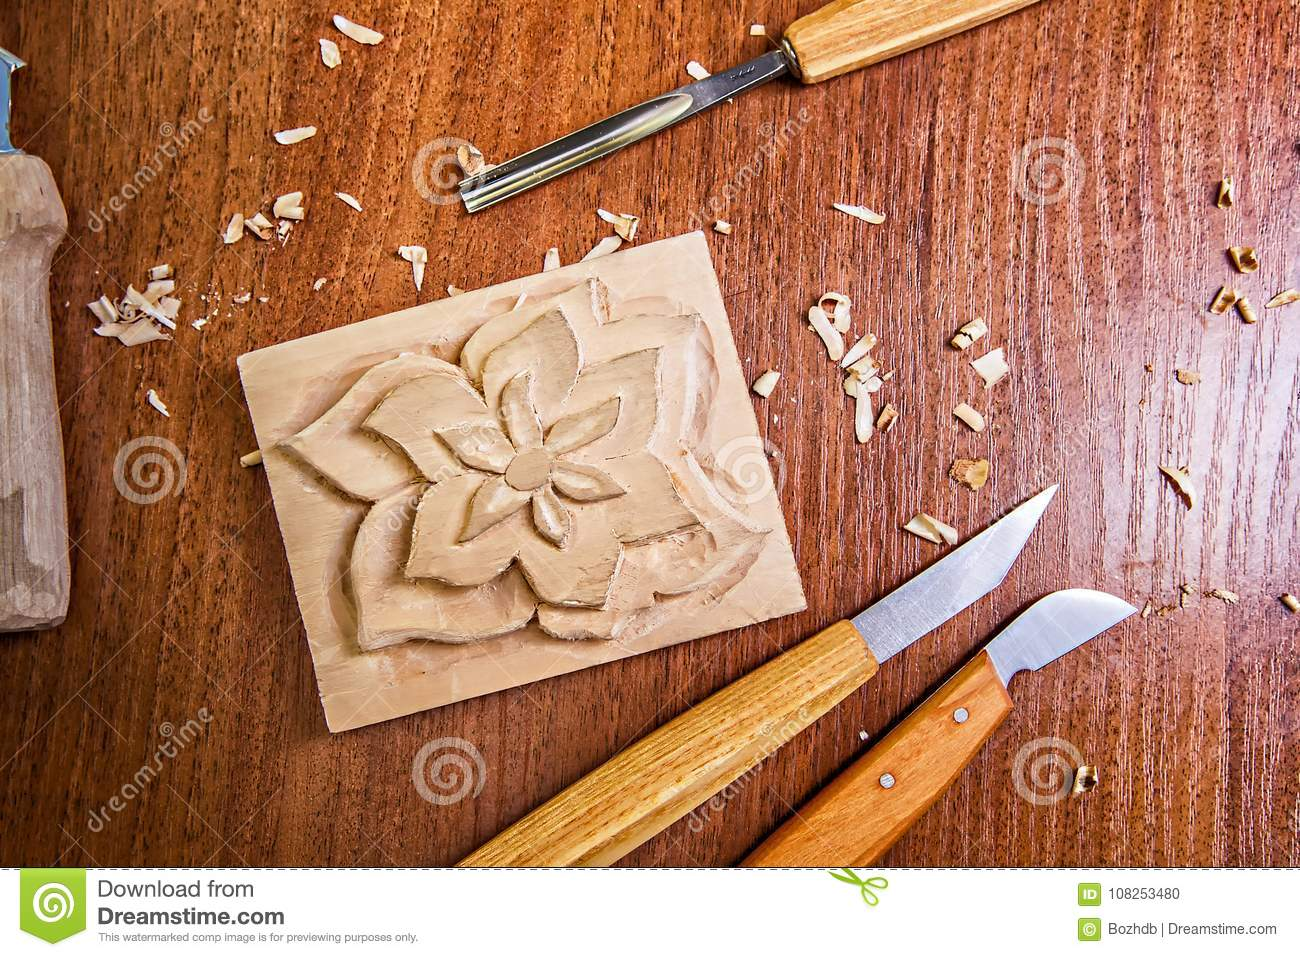 Old Used Wood Carving Tools Stock Photo - Image of craft